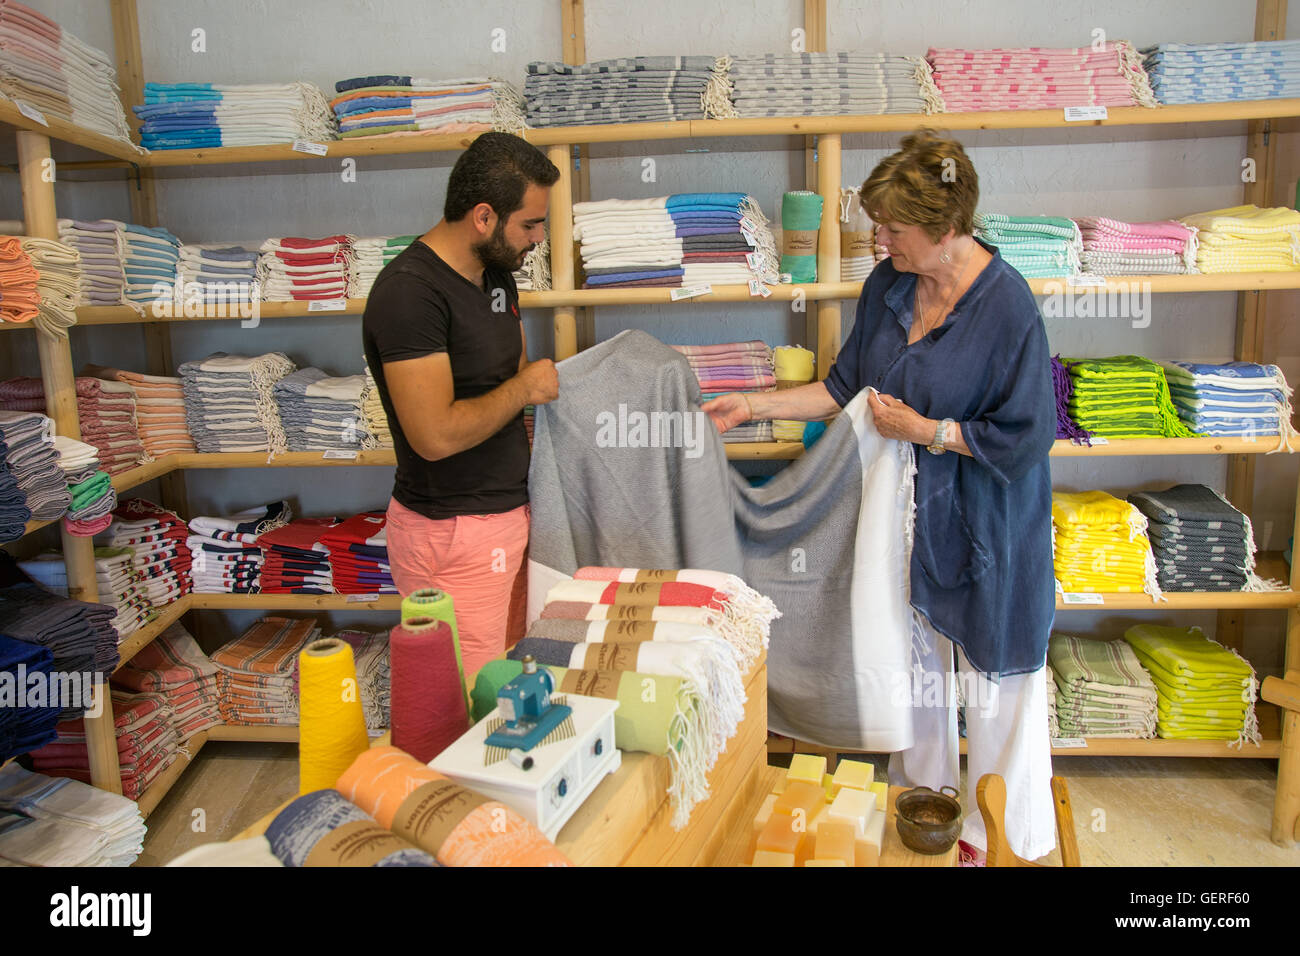 Owner and client in towel shop with display in Kalkan Turkey, - Stock Image